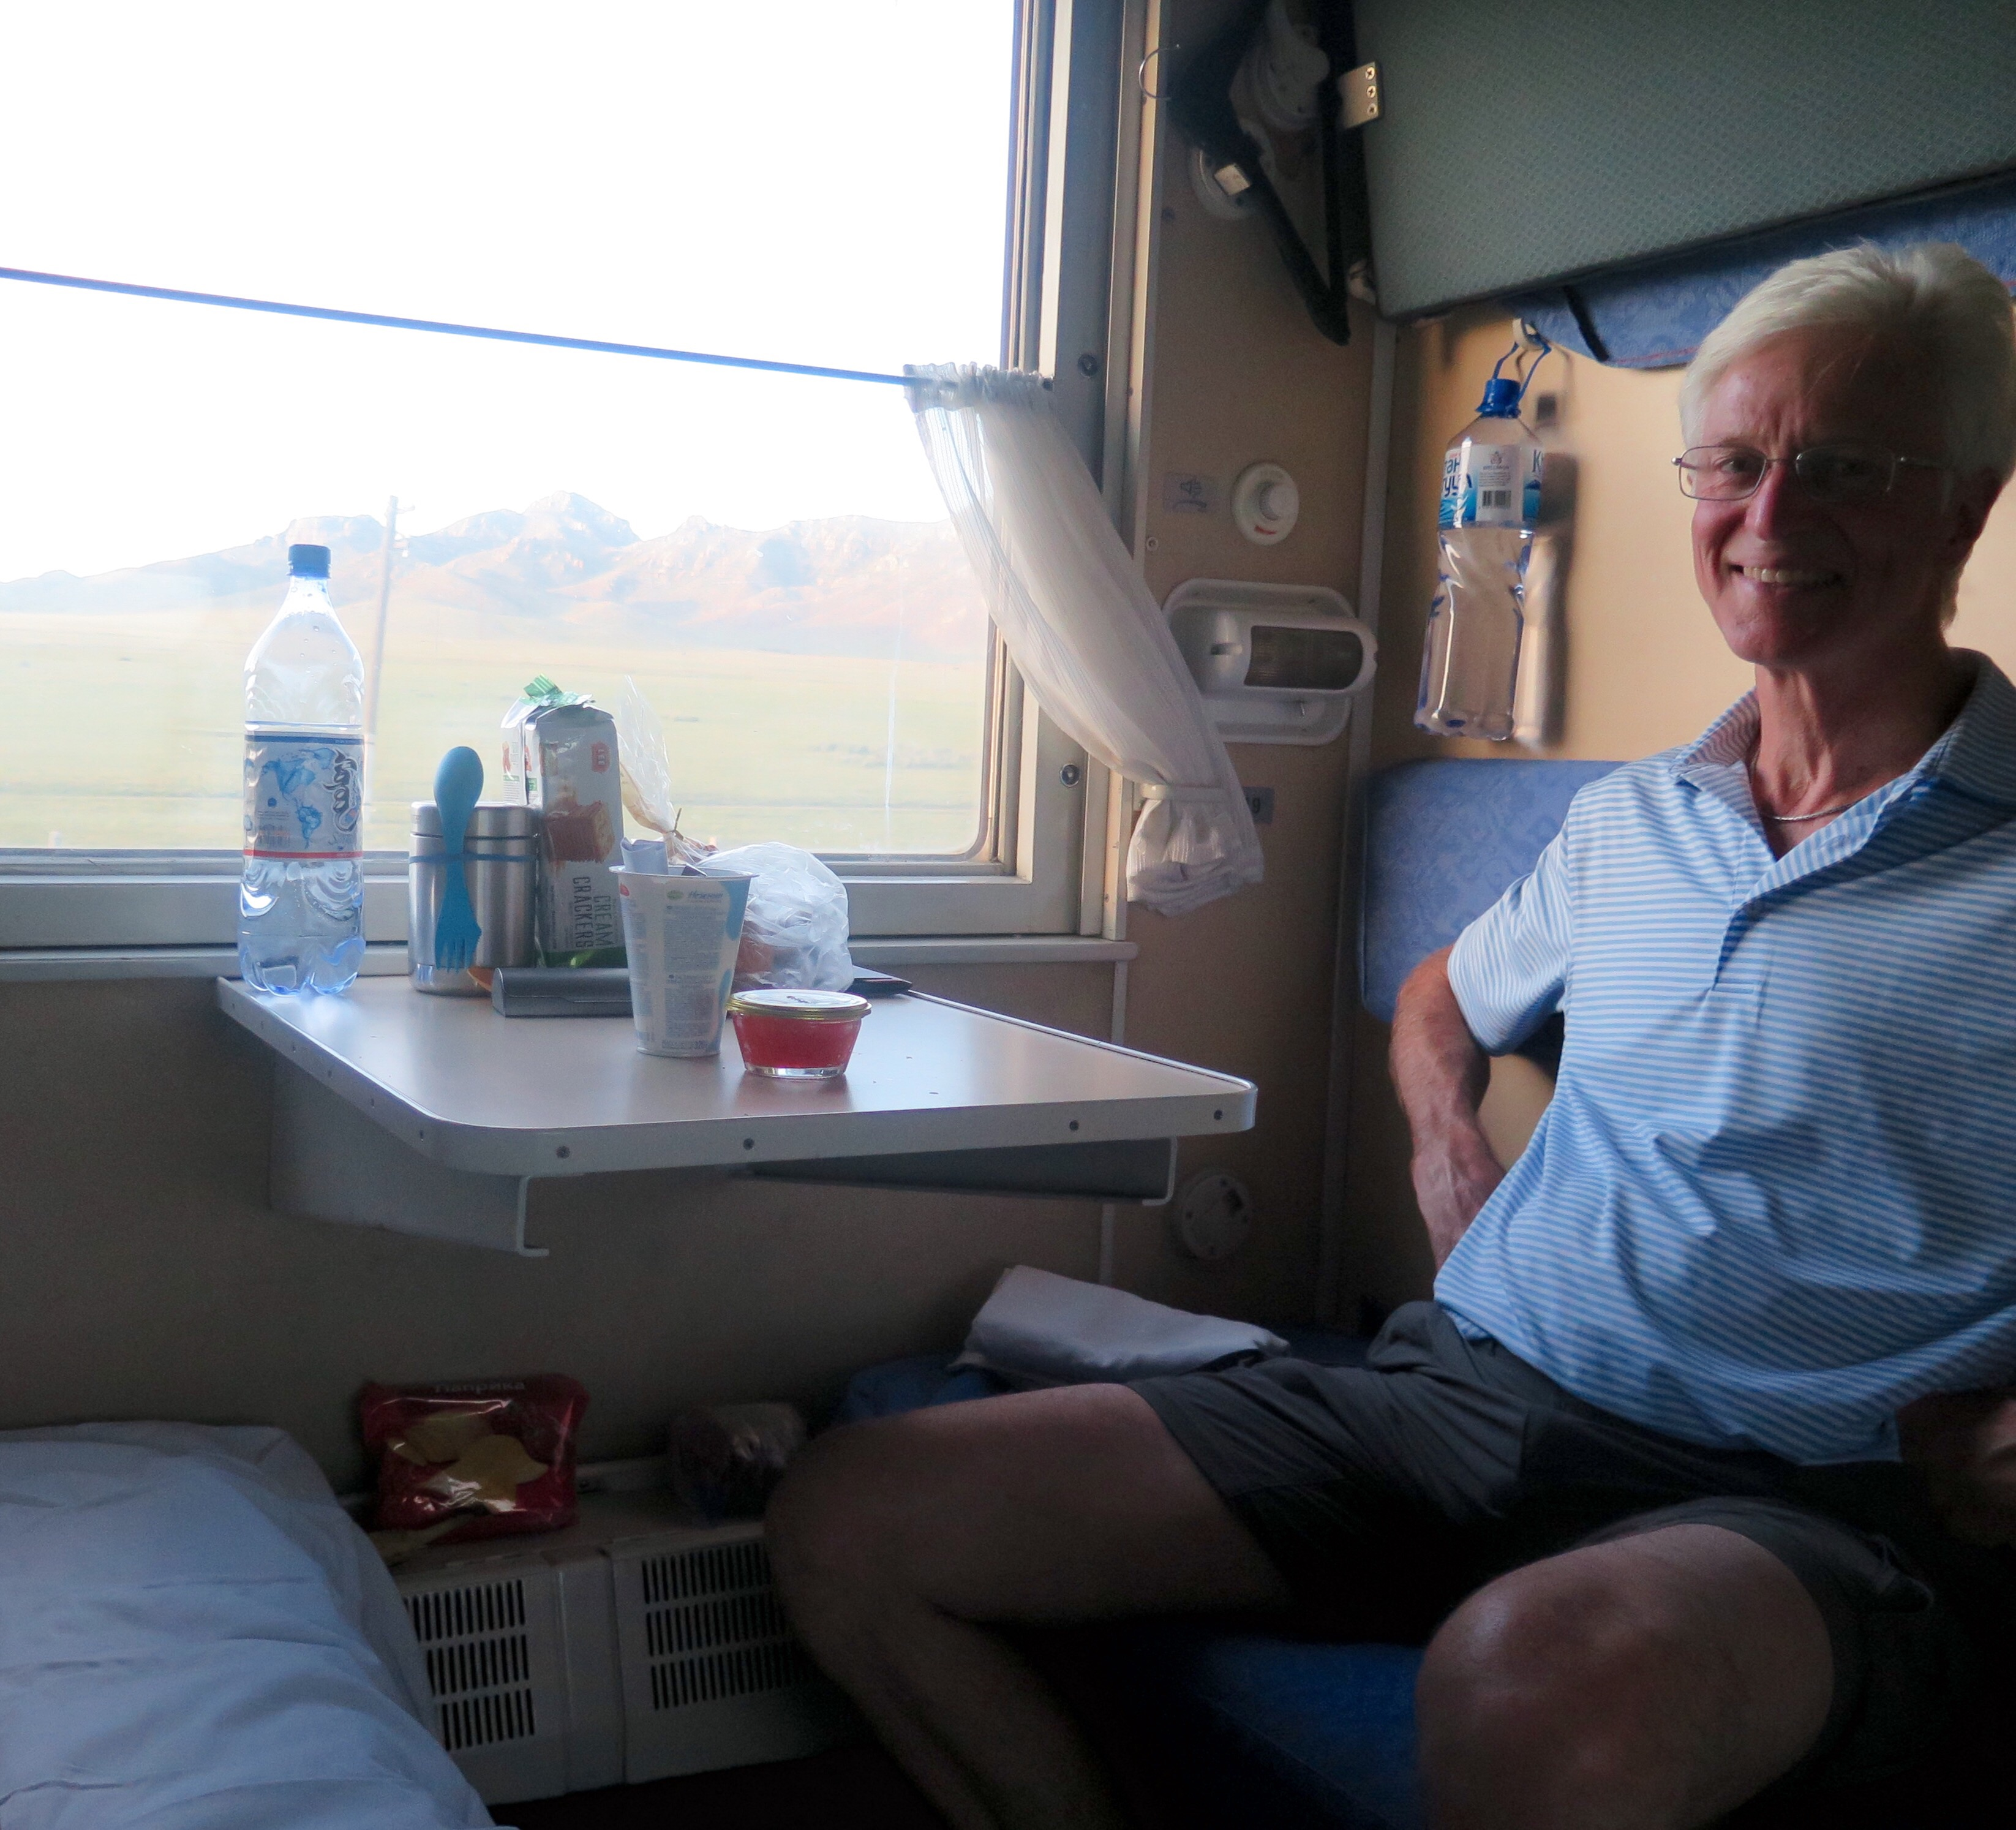 Steve in our compartment. (If you can tell, I've already made up my bed in this picture, although Steve hasn't made his.)